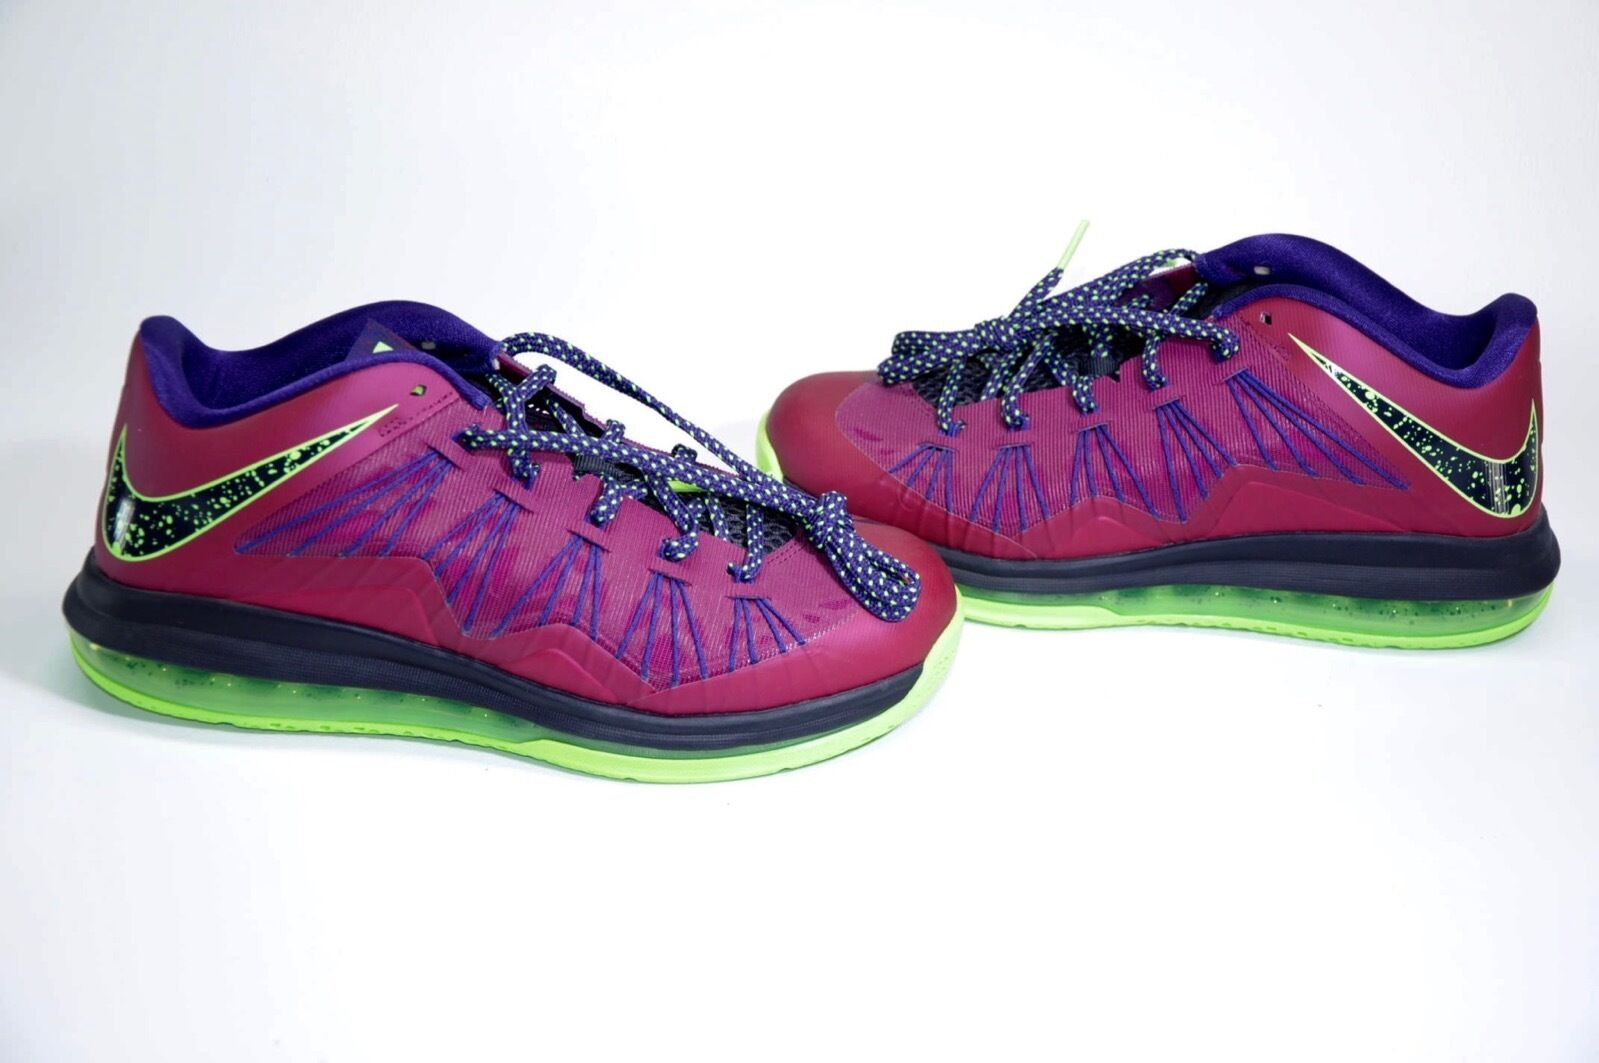 NEW NIKE AIR MAX LEBRON X 10 RASPBERRY-BLUE PRINT-PURPLE-LIME Price reduction Brand discount